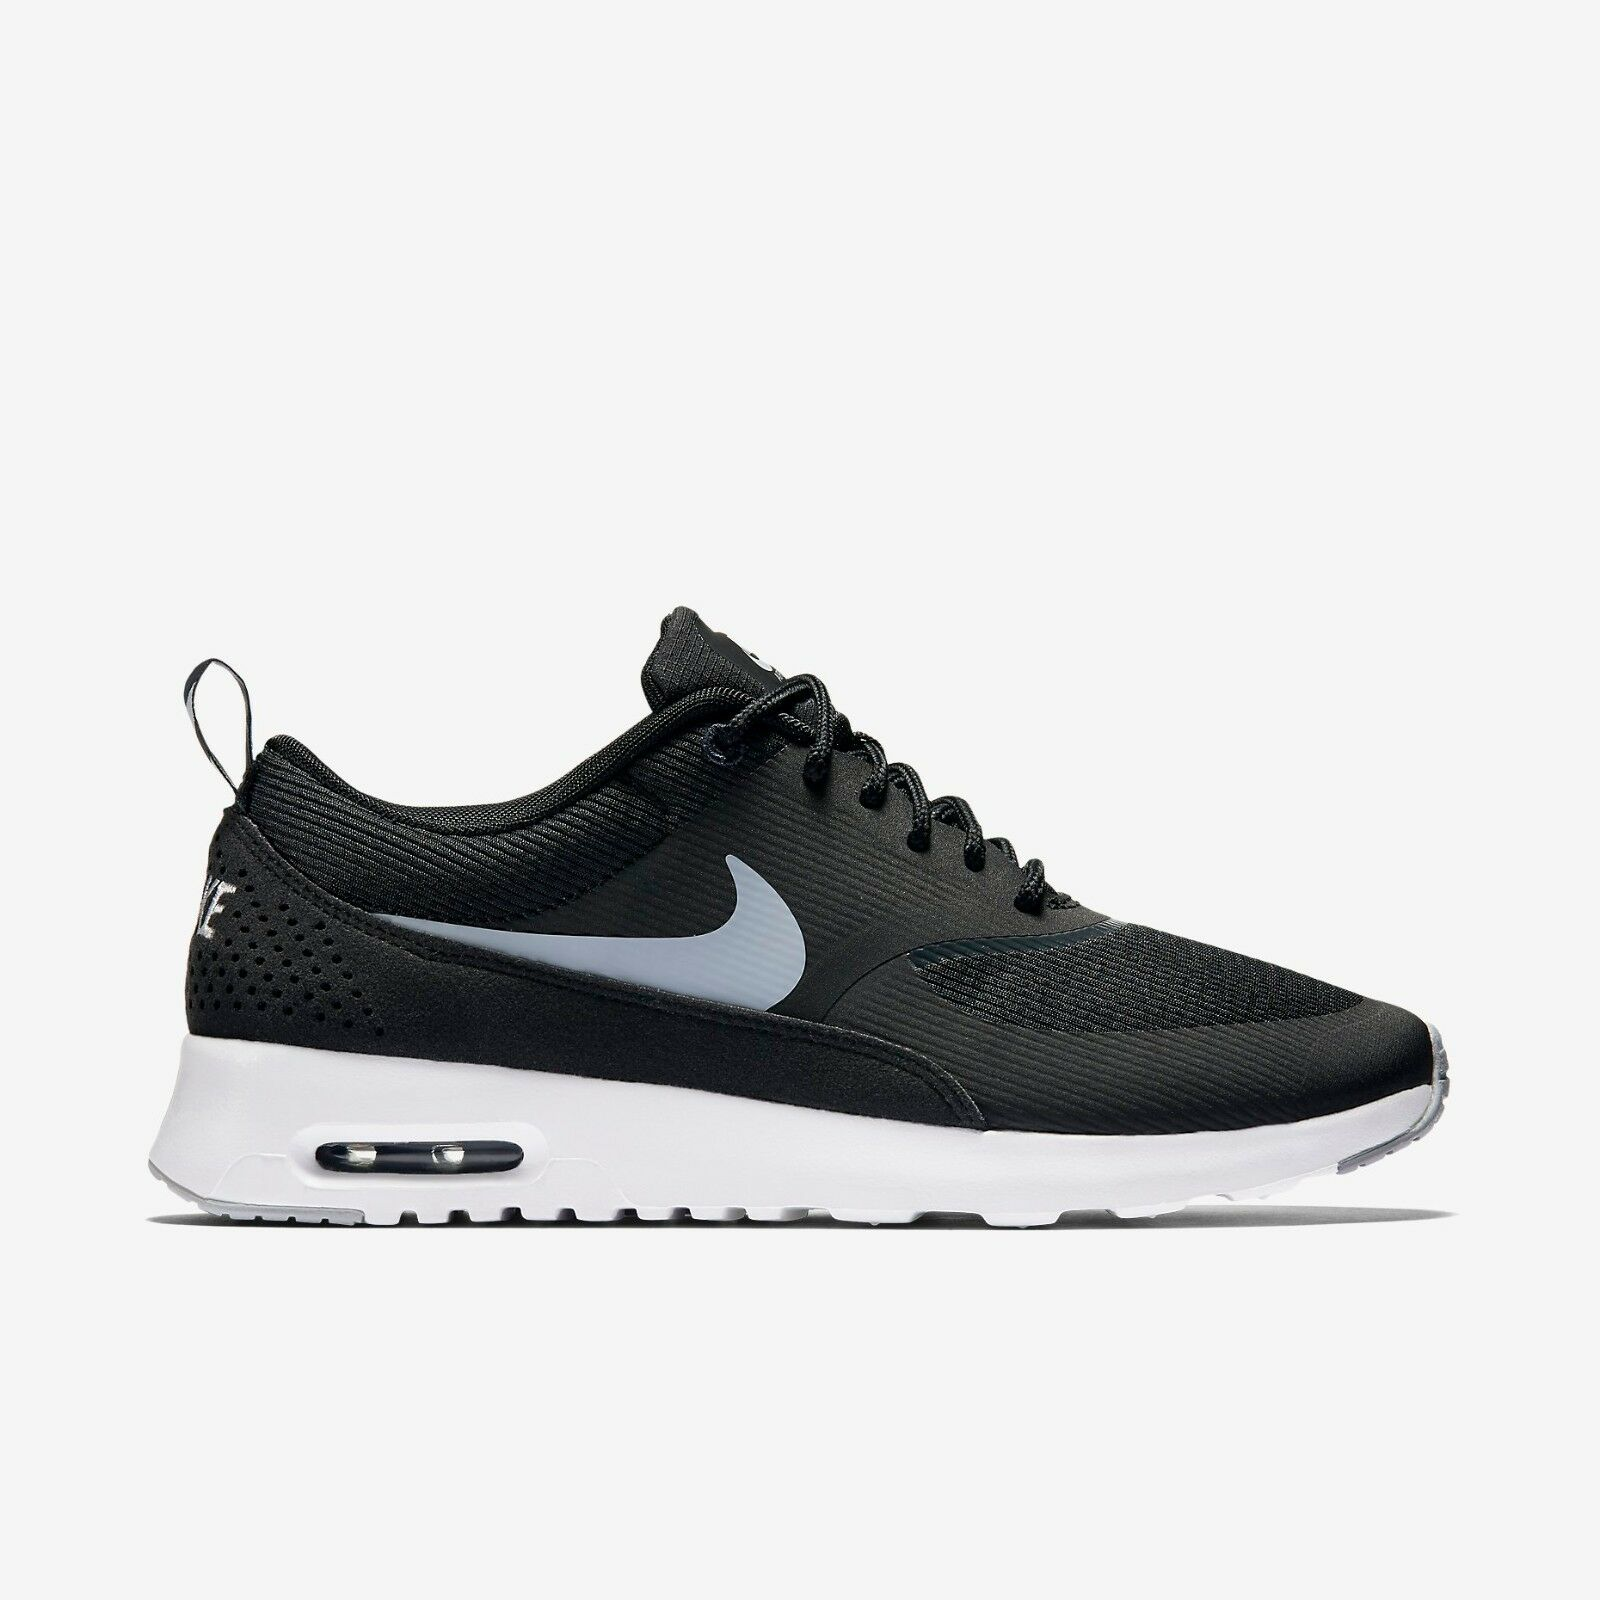 New Nike Women's Air Max Thea Shoes (599409-007)  Black/Anthracite/White/Wolf Gr